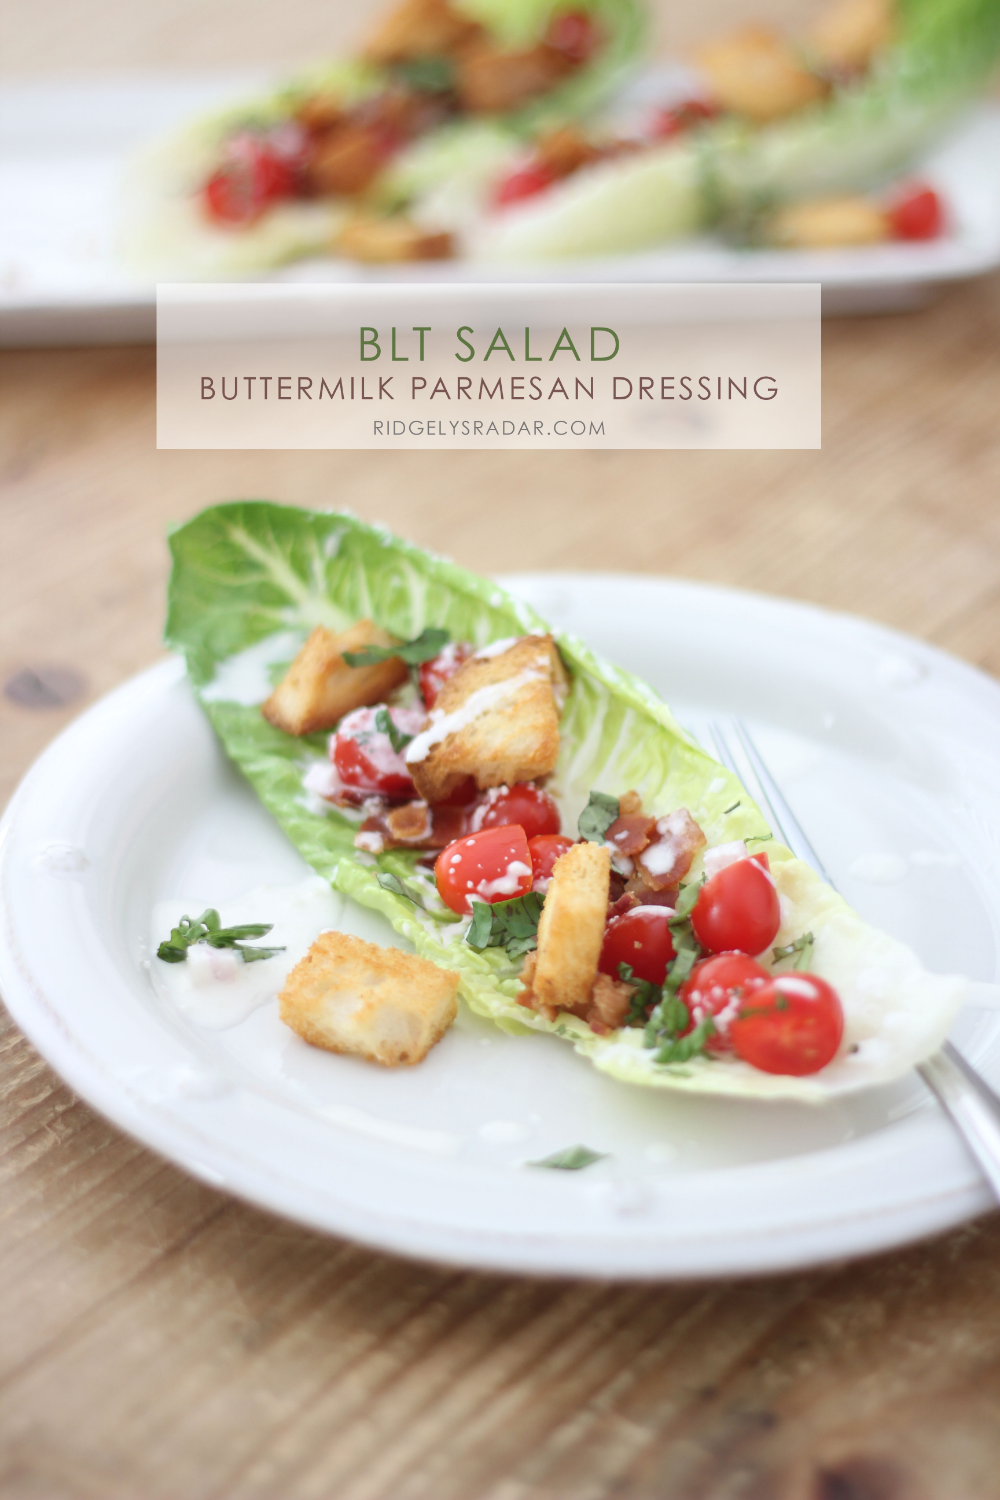 Blt Salad With Buttermilk Parmesan Dressing And Buttery Croutons Recipe Blt Salad Easy Salads Salad